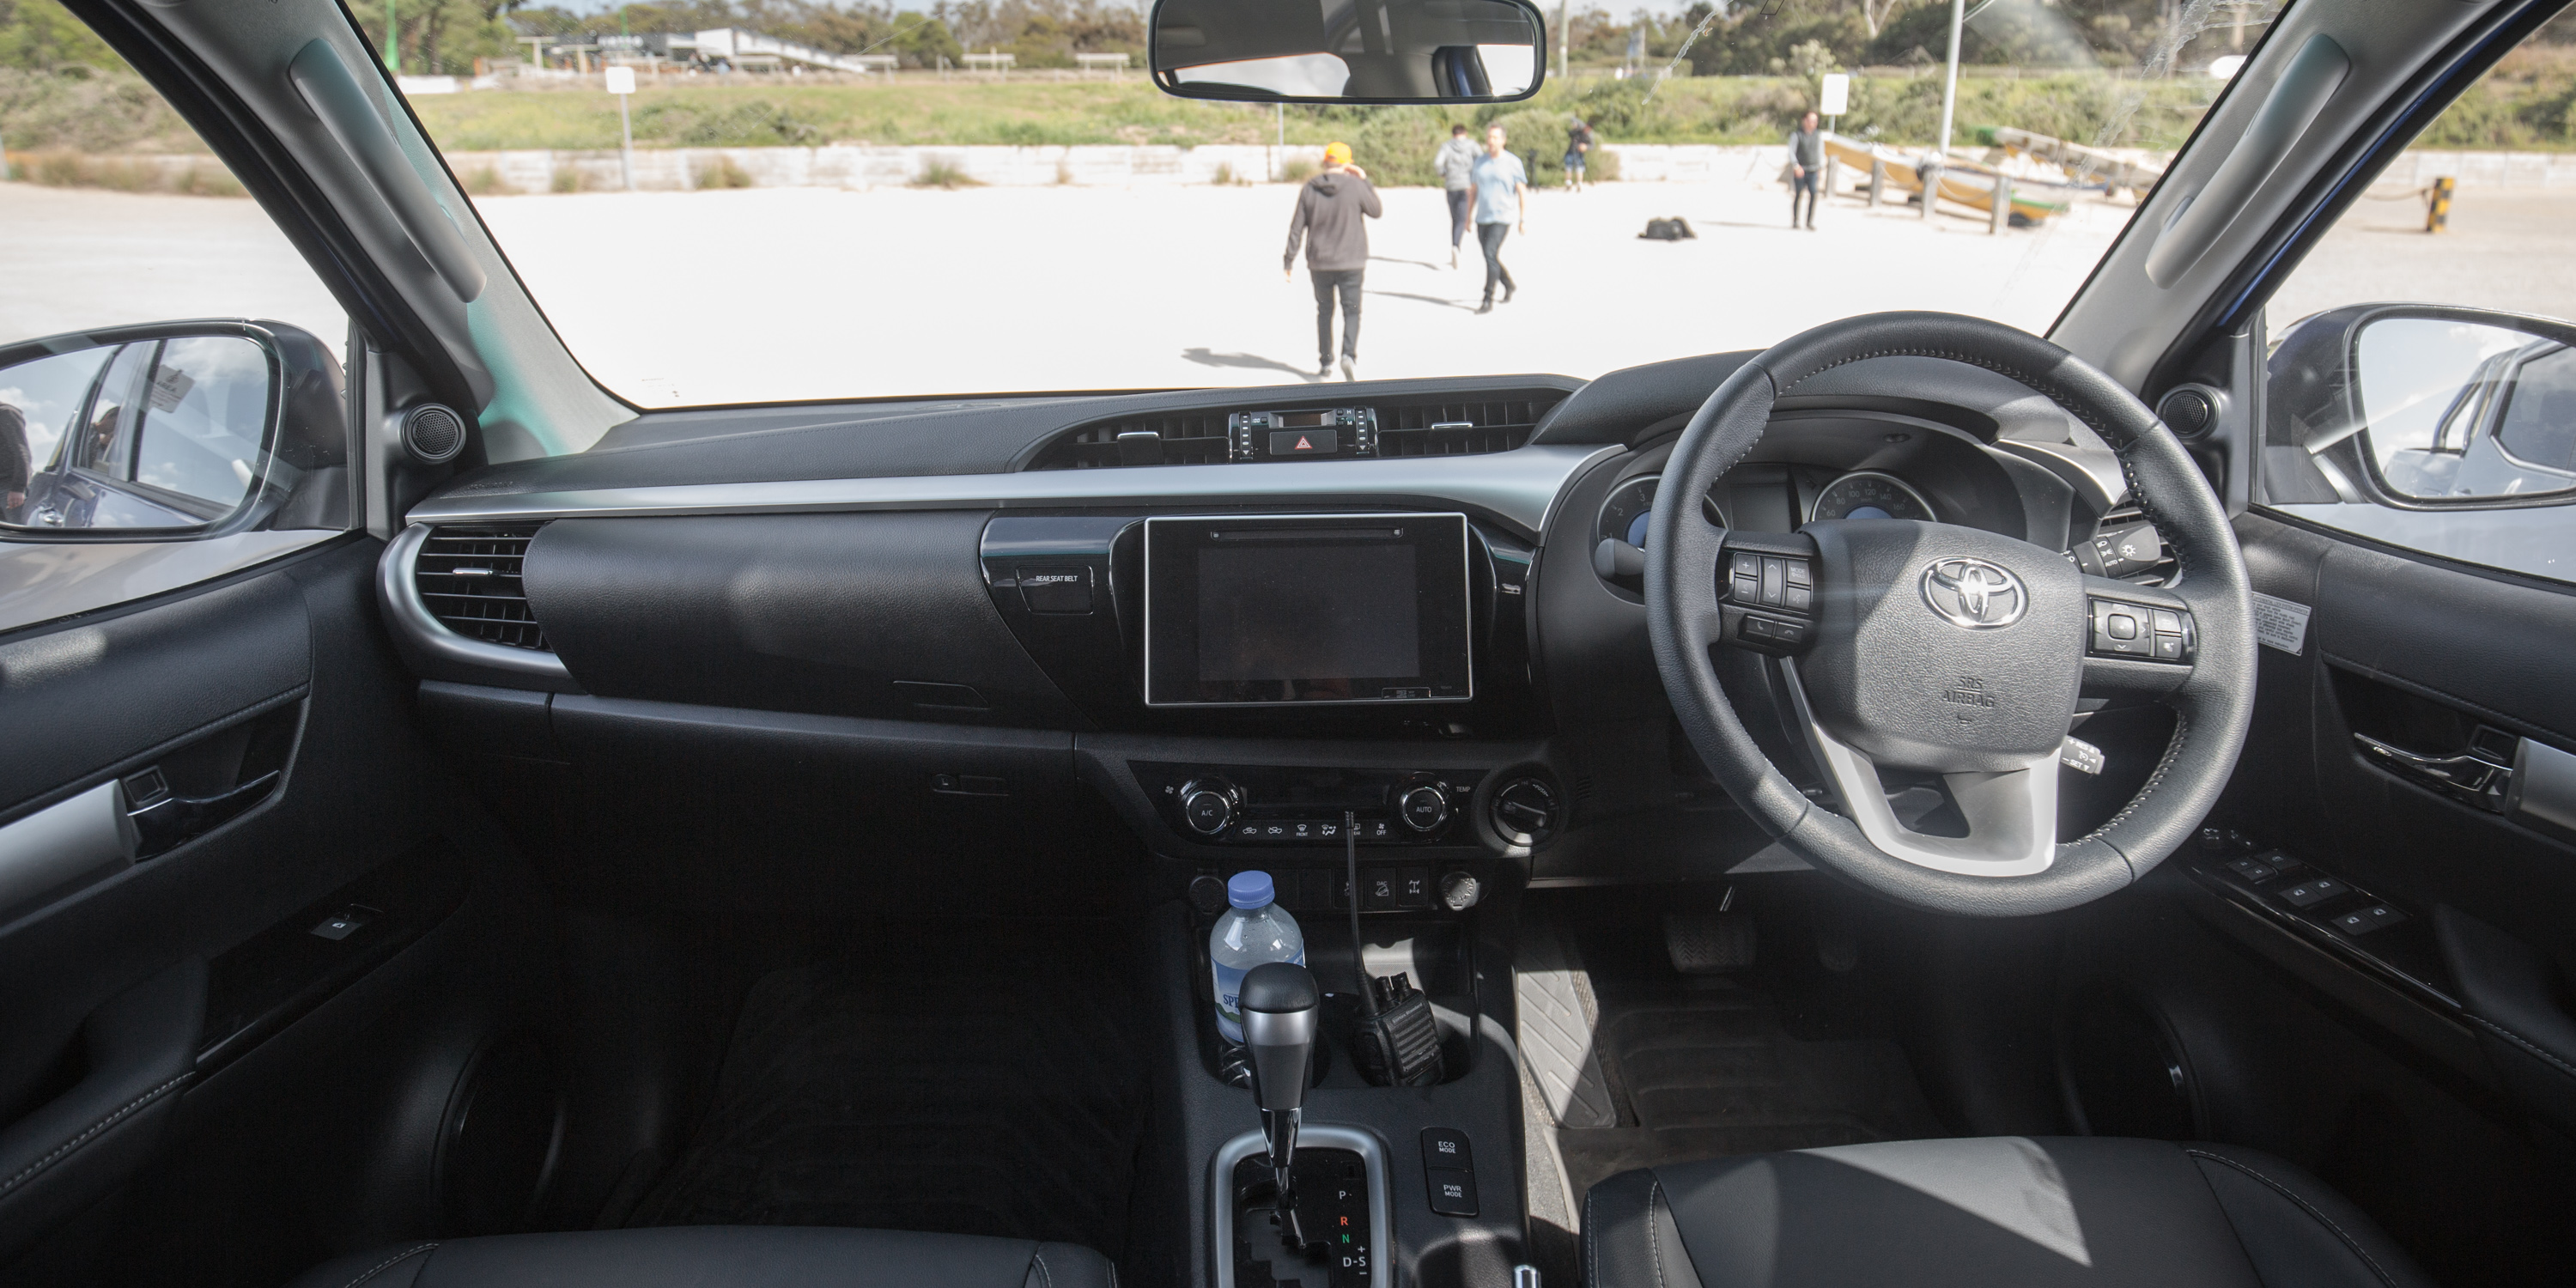 2006 Toyota Corolla For Sale >> 2016 Toyota HiLux SR5 Review - photos | CarAdvice